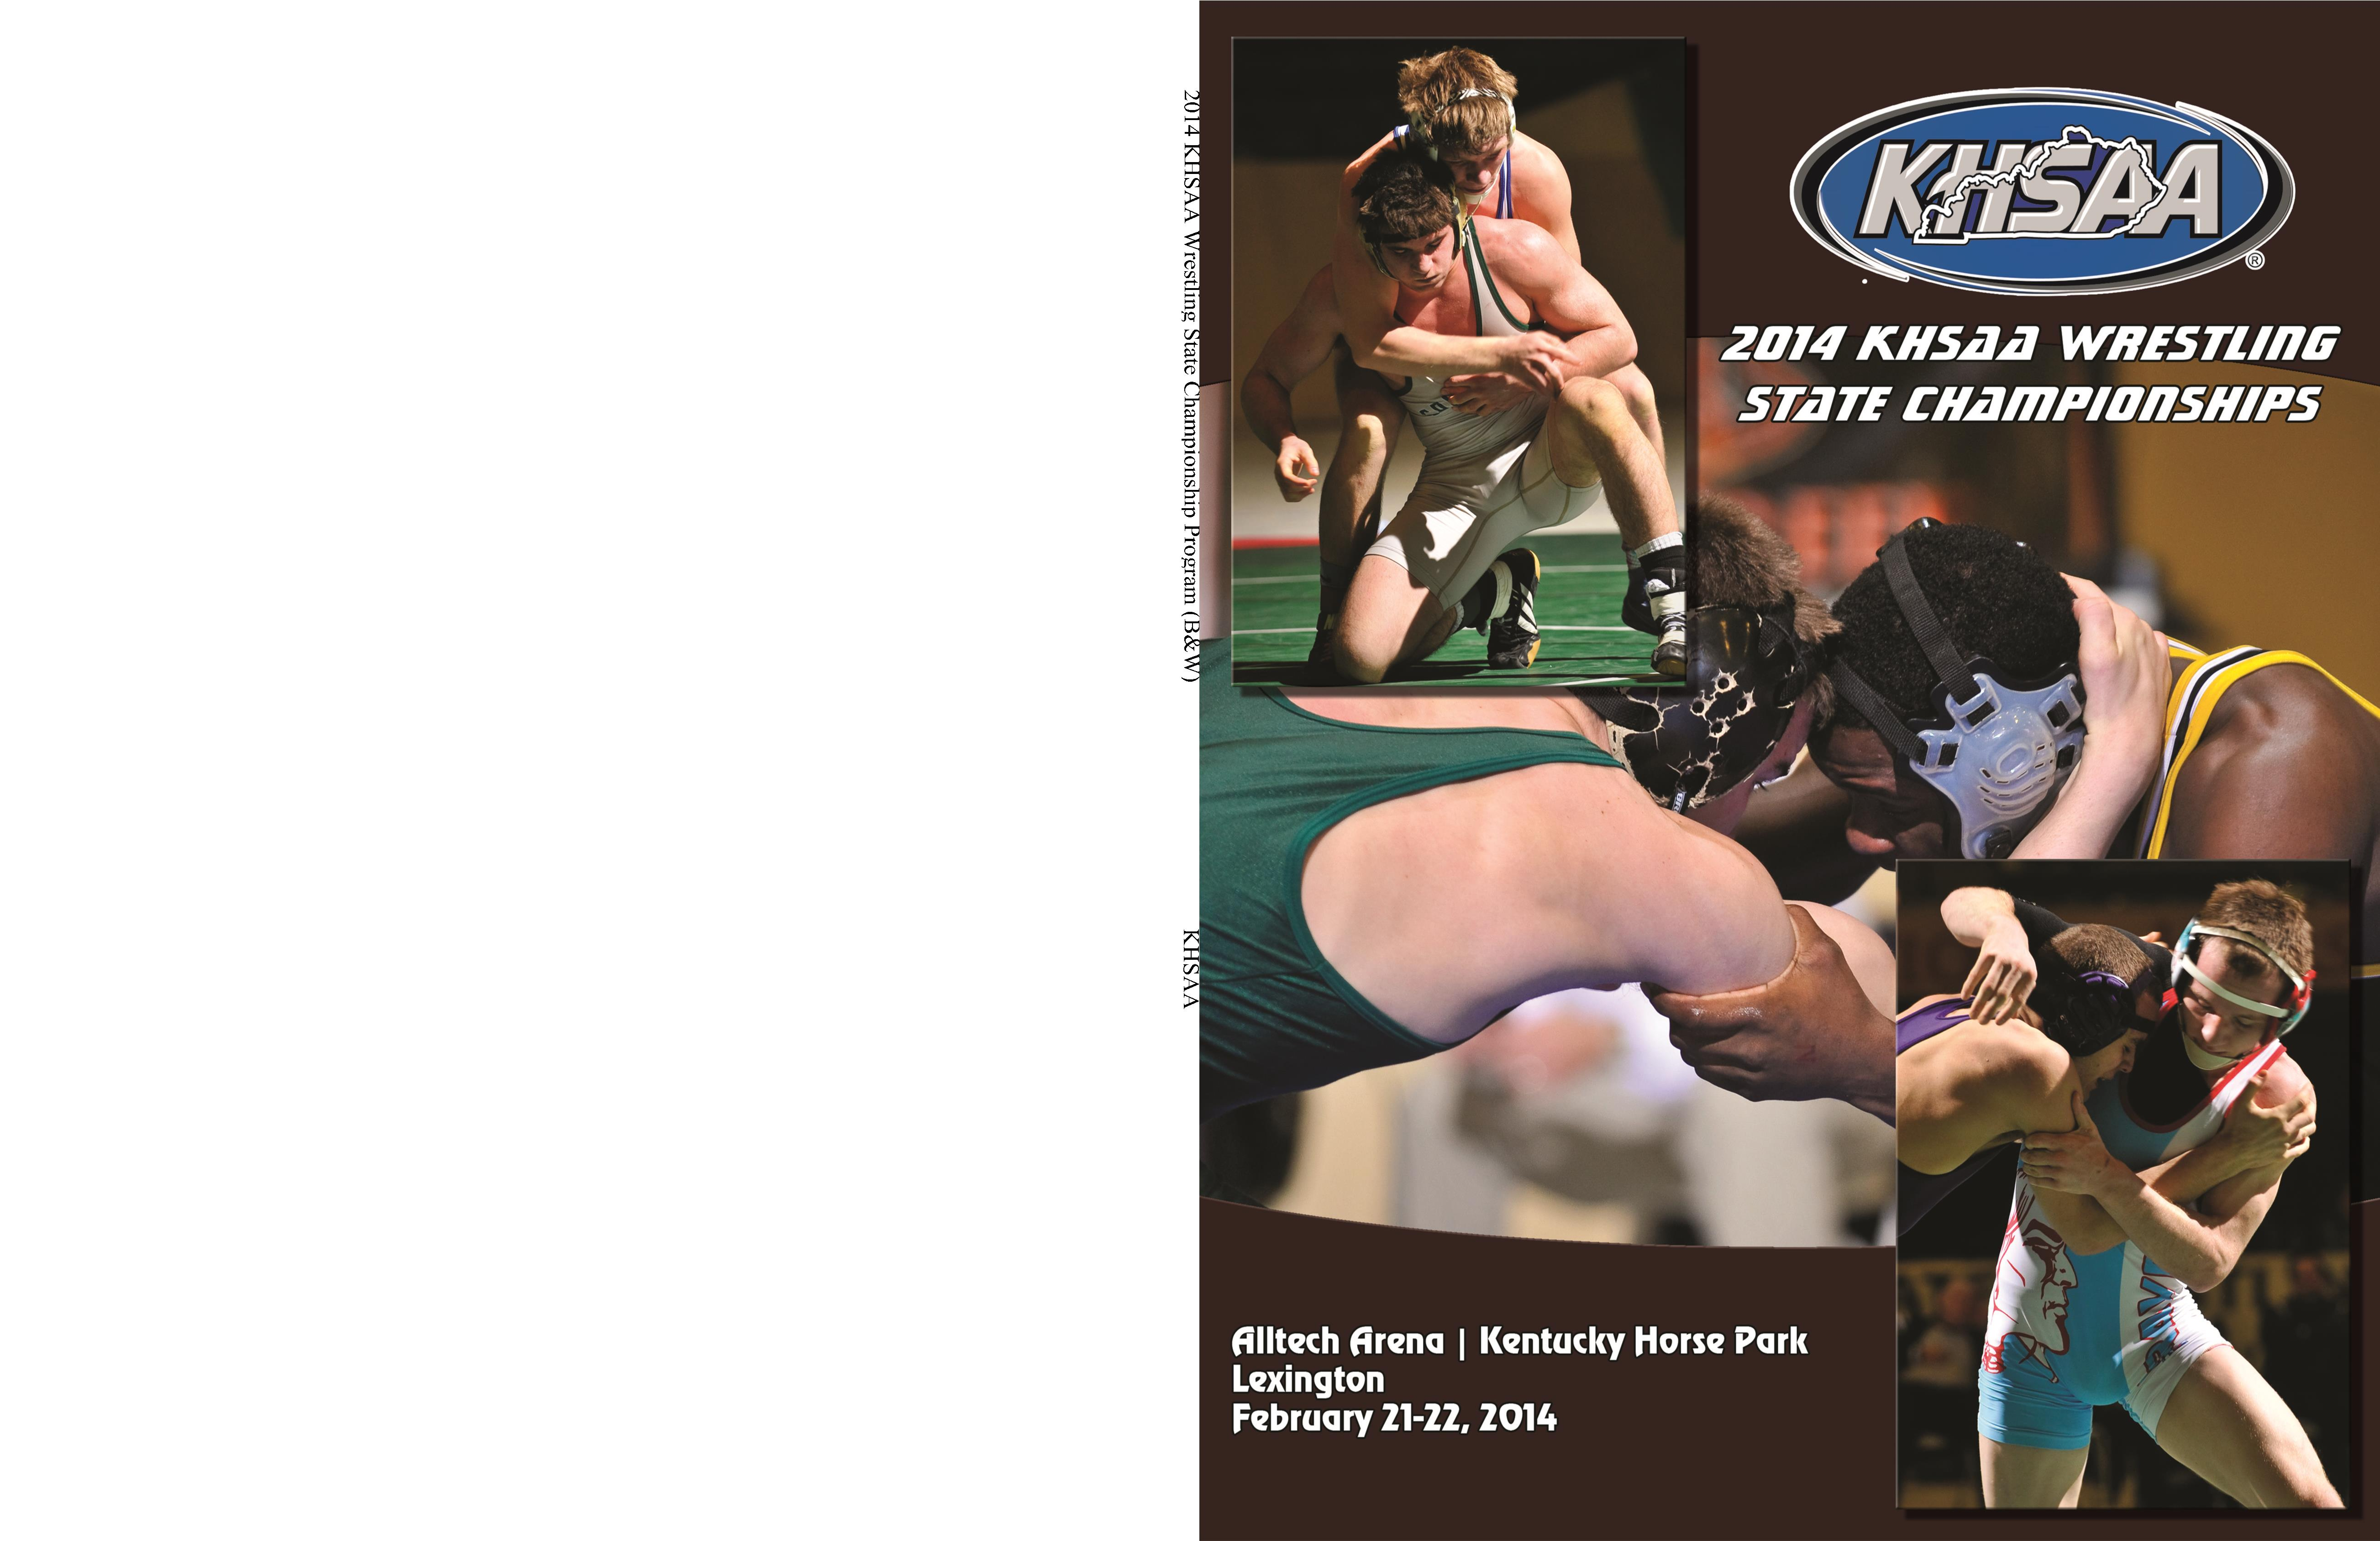 2014 KHSAA Wrestling State Championship Program (B&W) cover image